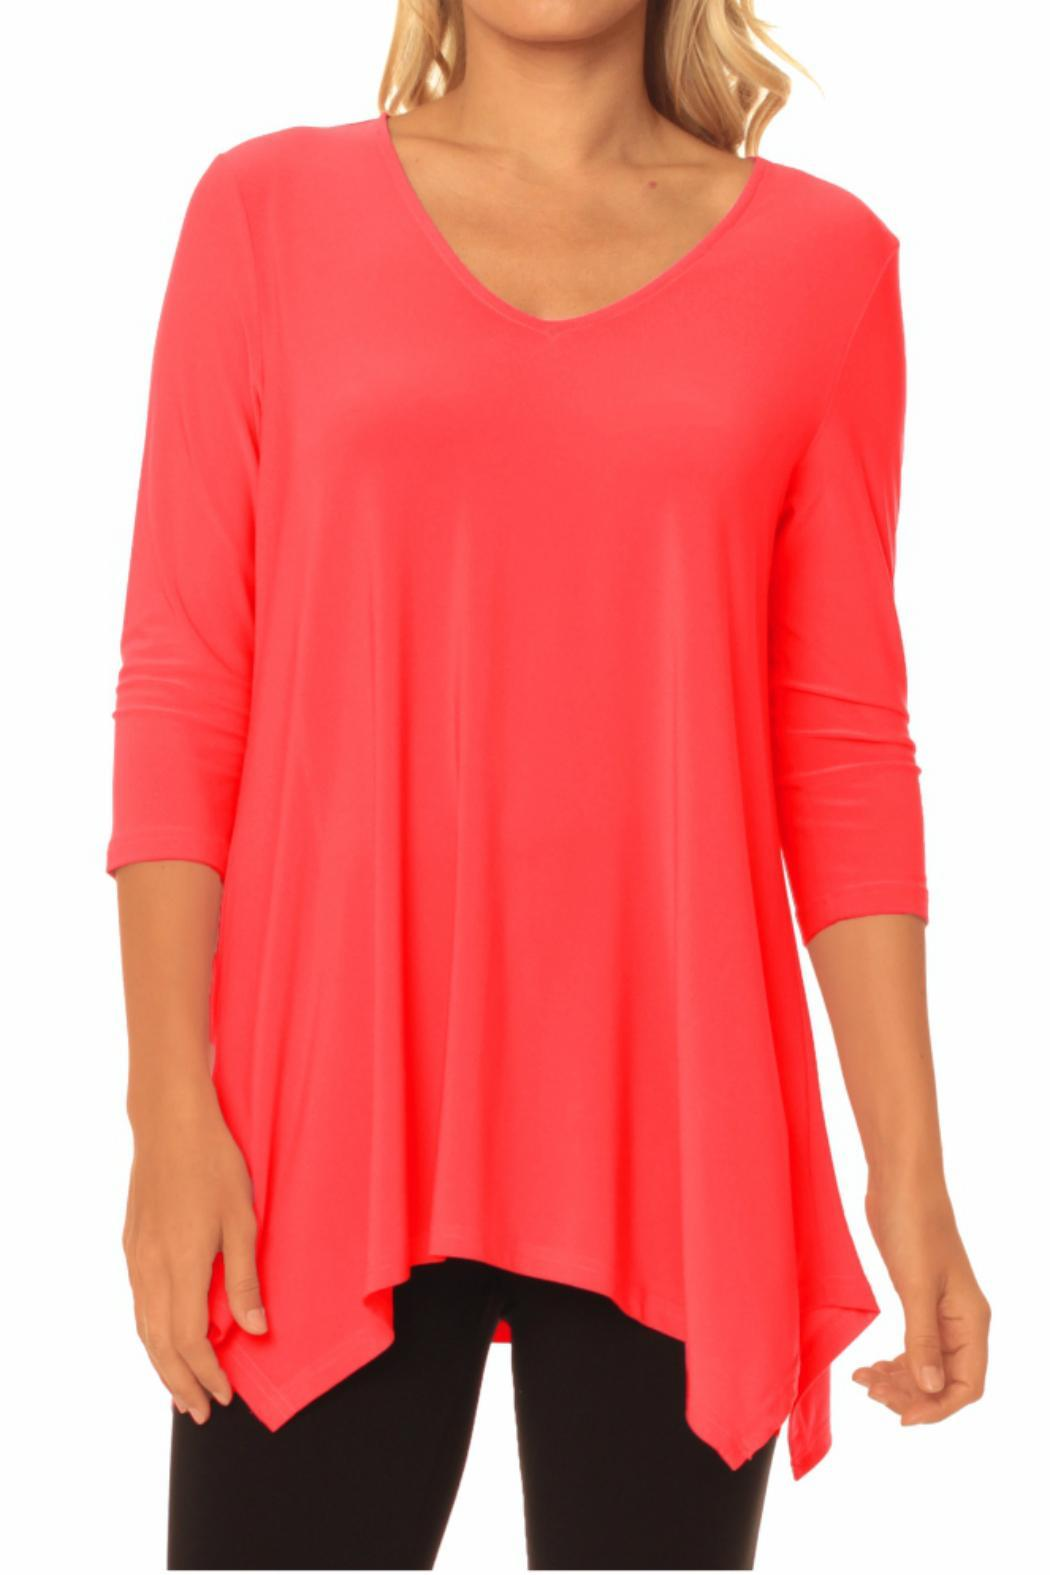 Alisha D V-Neck Tunic - Main Image